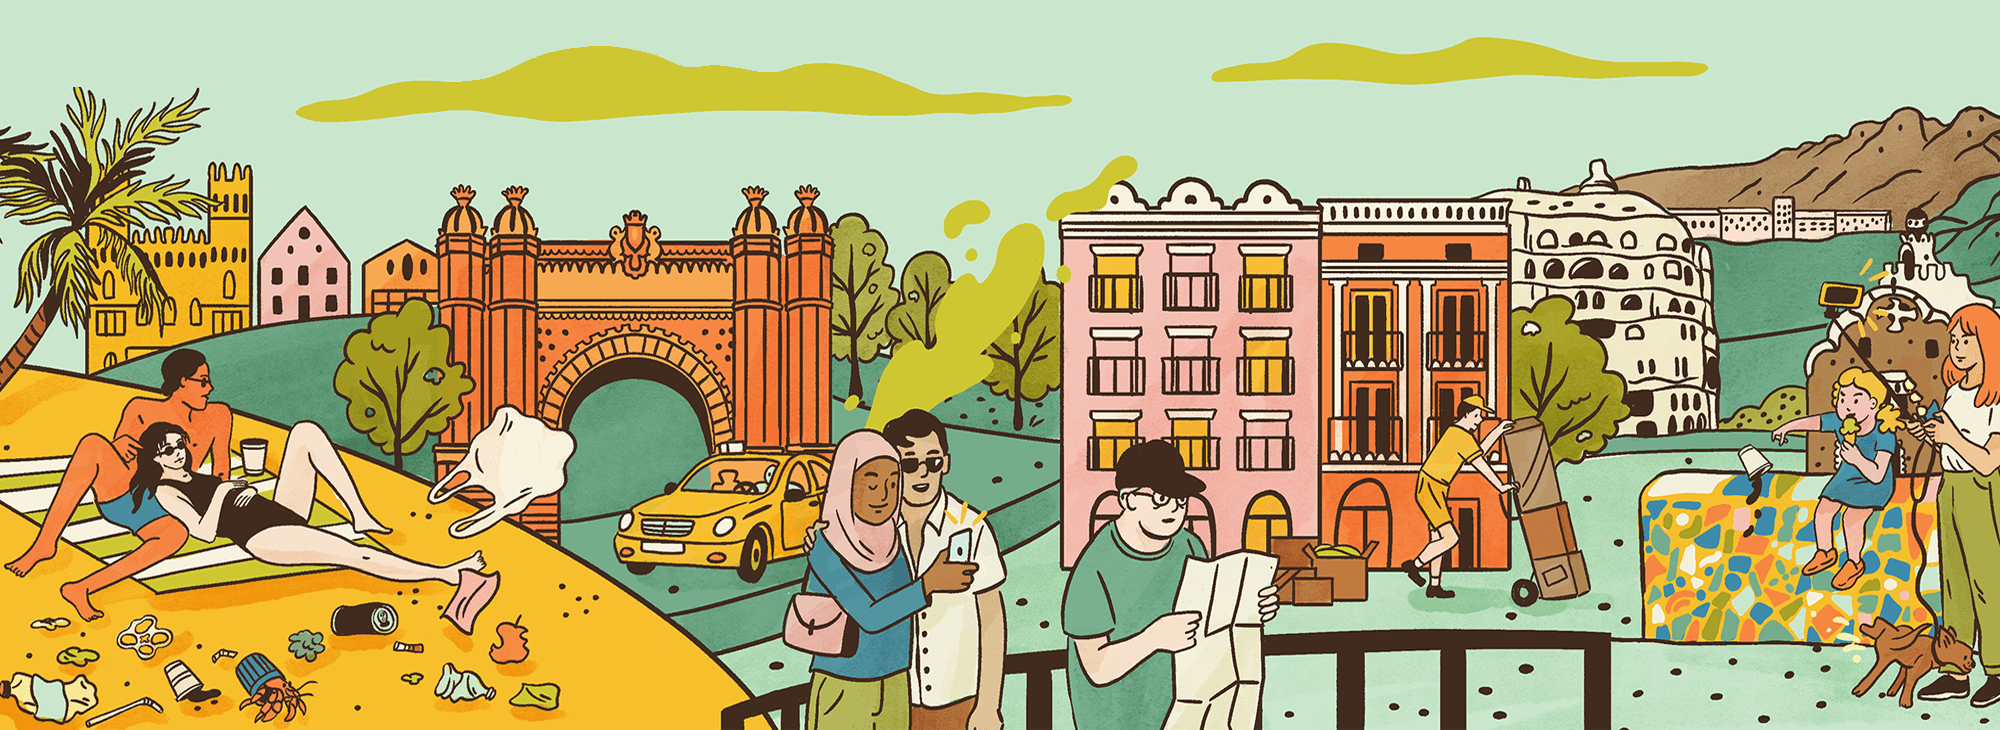 Illustration showing tourists not taking care of a location